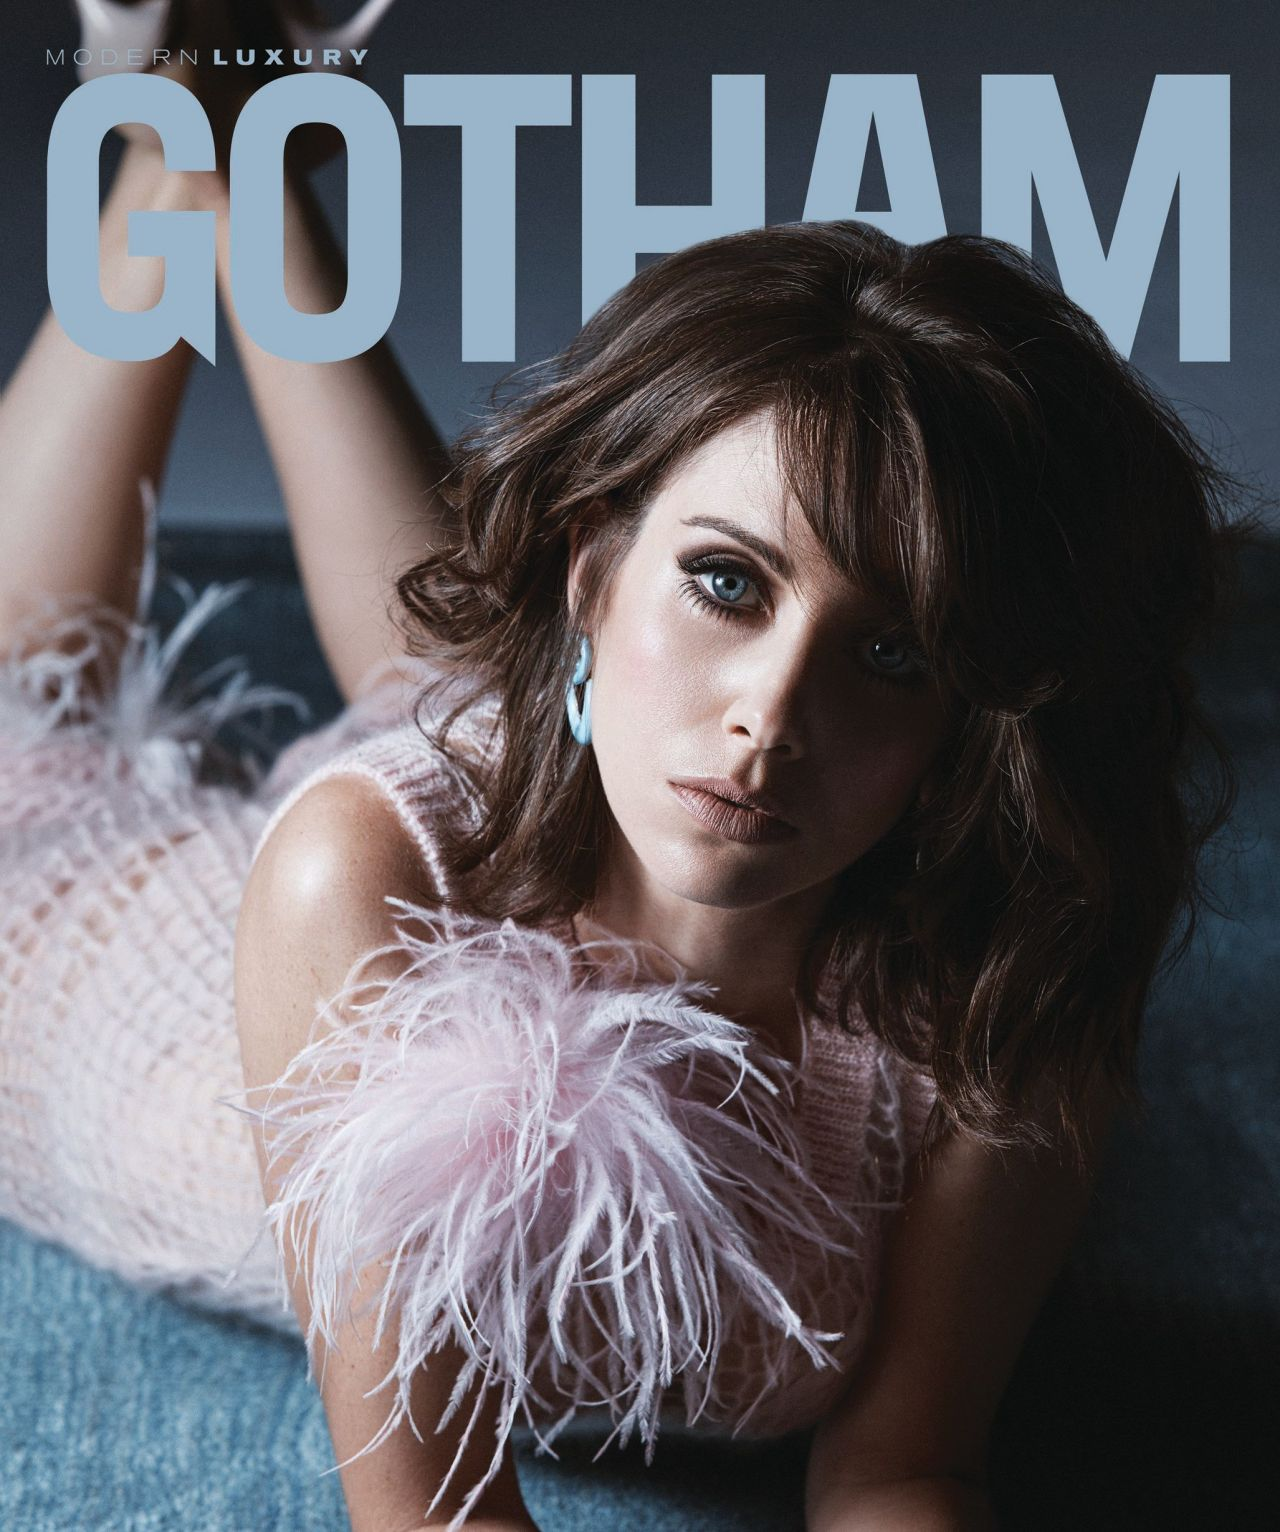 http://celebmafia.com/wp-content/uploads/2017/12/alison-brie-modern-luxury-magazine-january-2018-photos-7.jpg